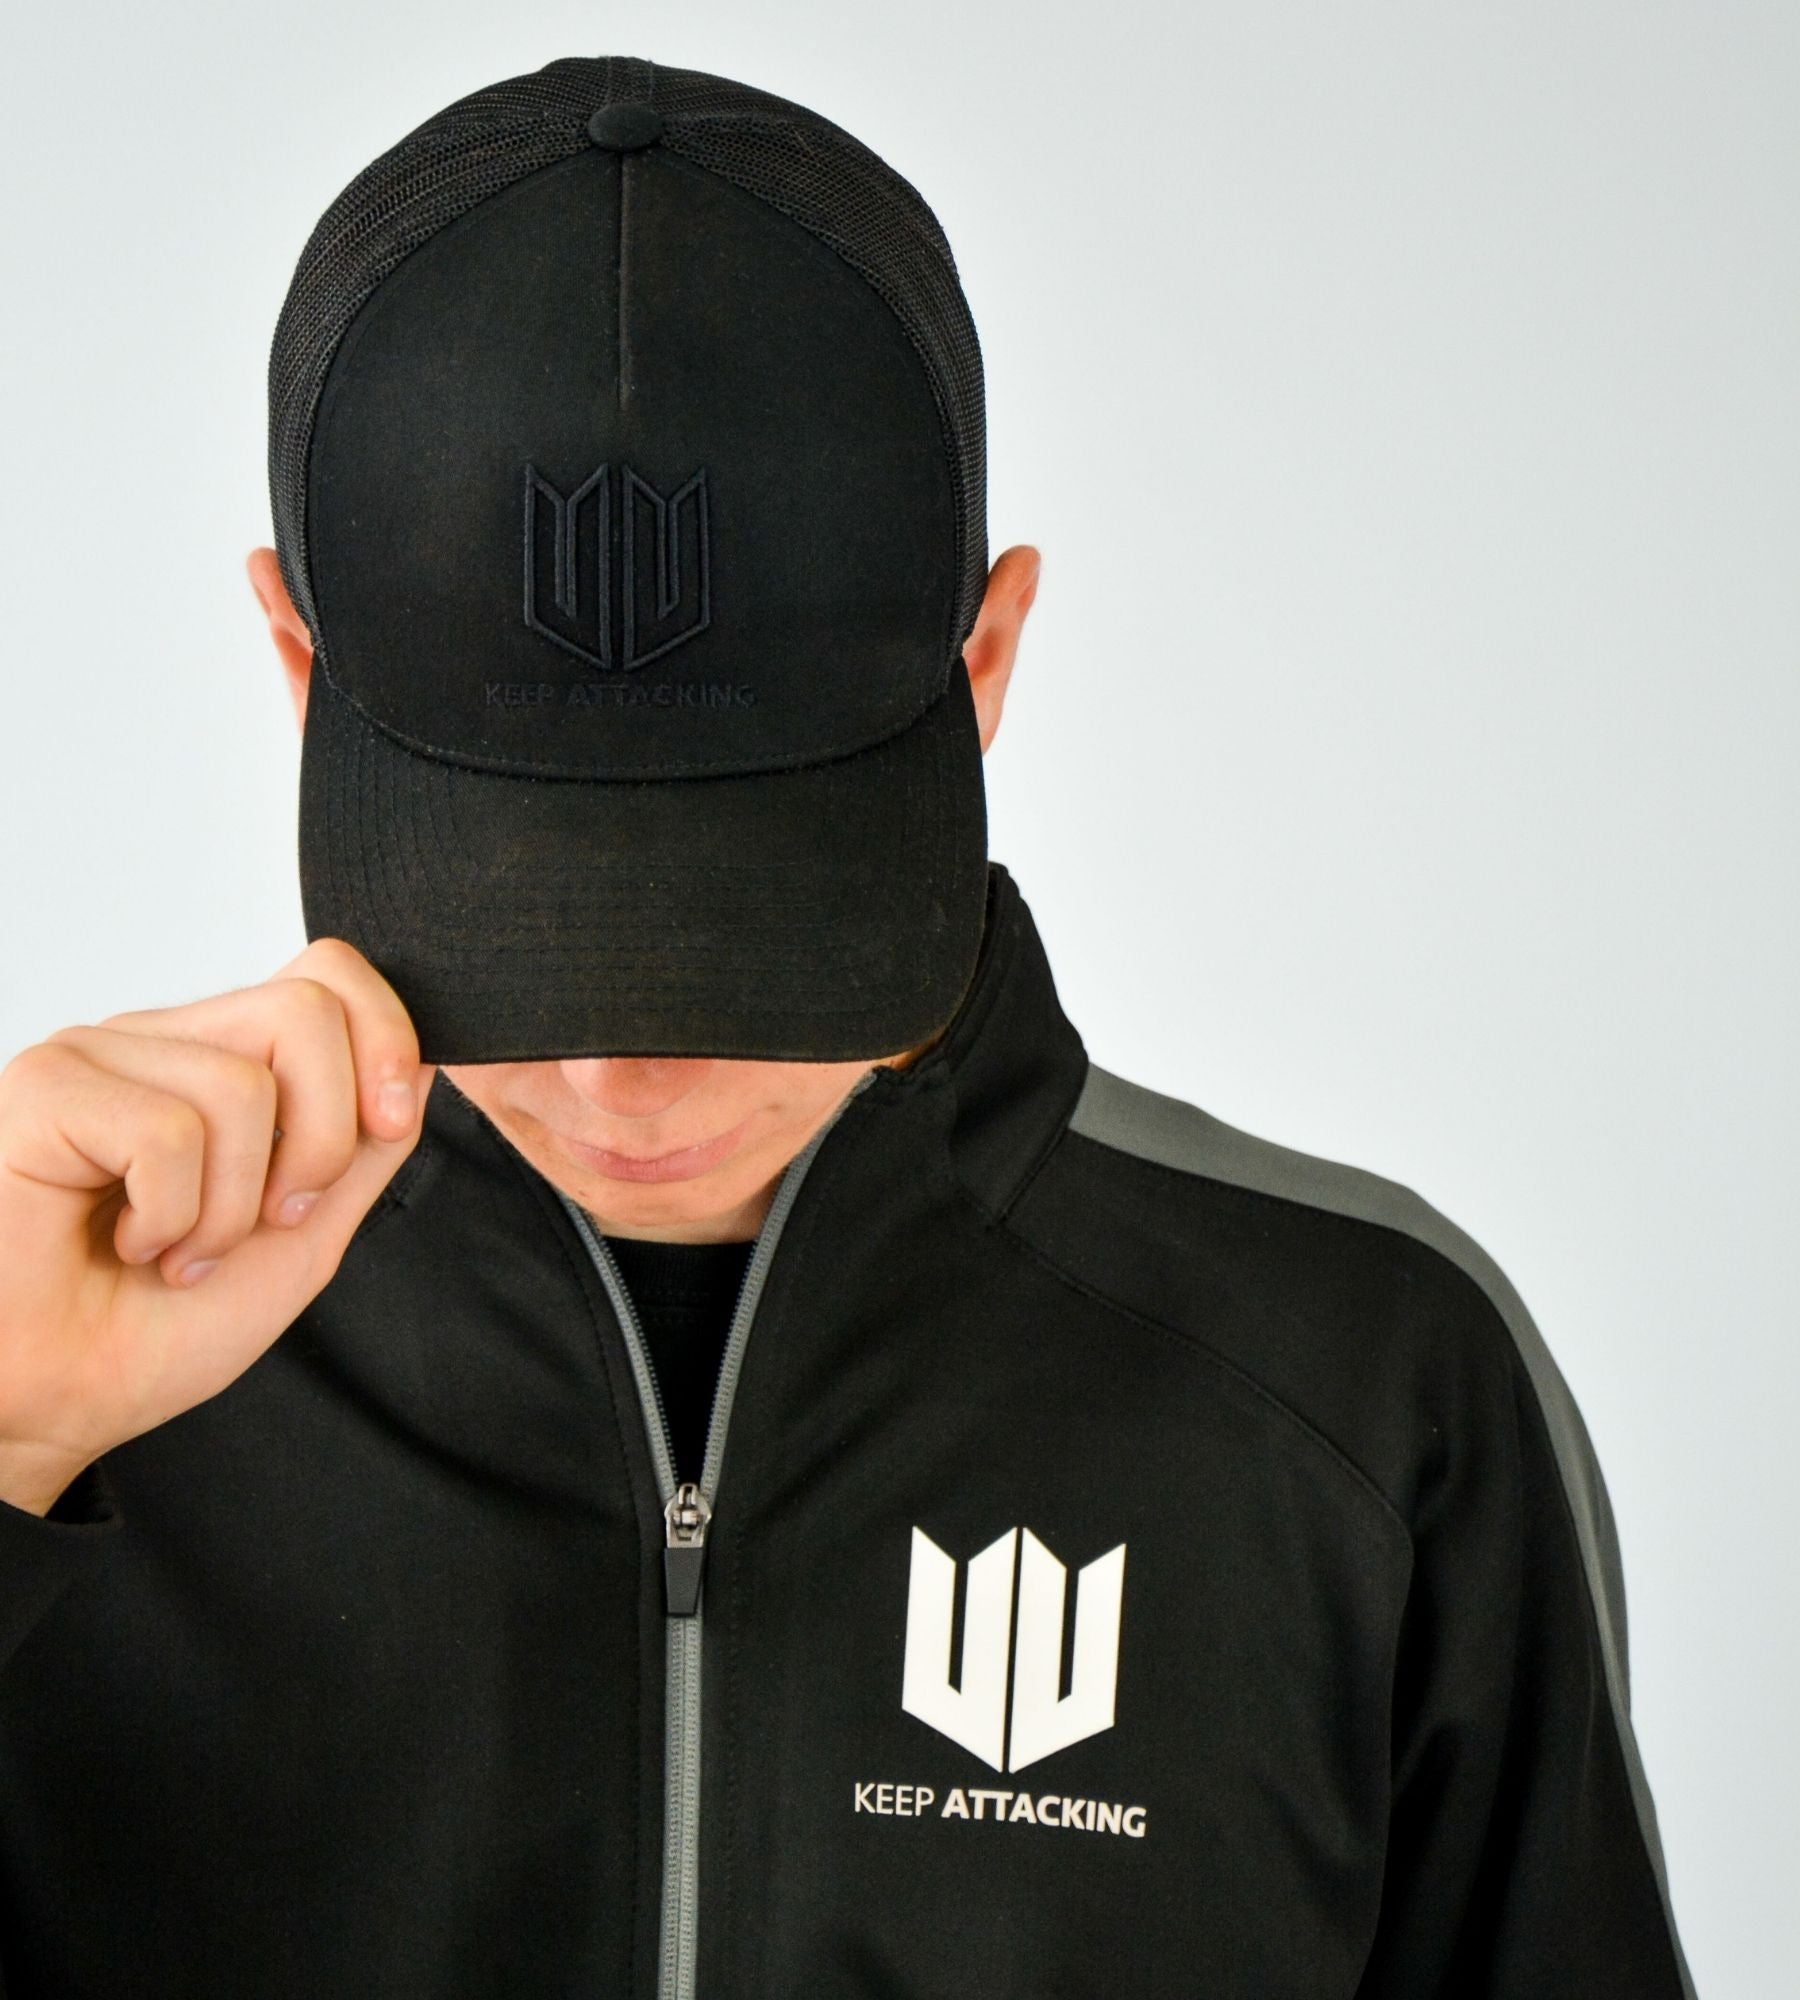 KA Mens Resilience Training Tracksuit Top Lifestyle Closeup